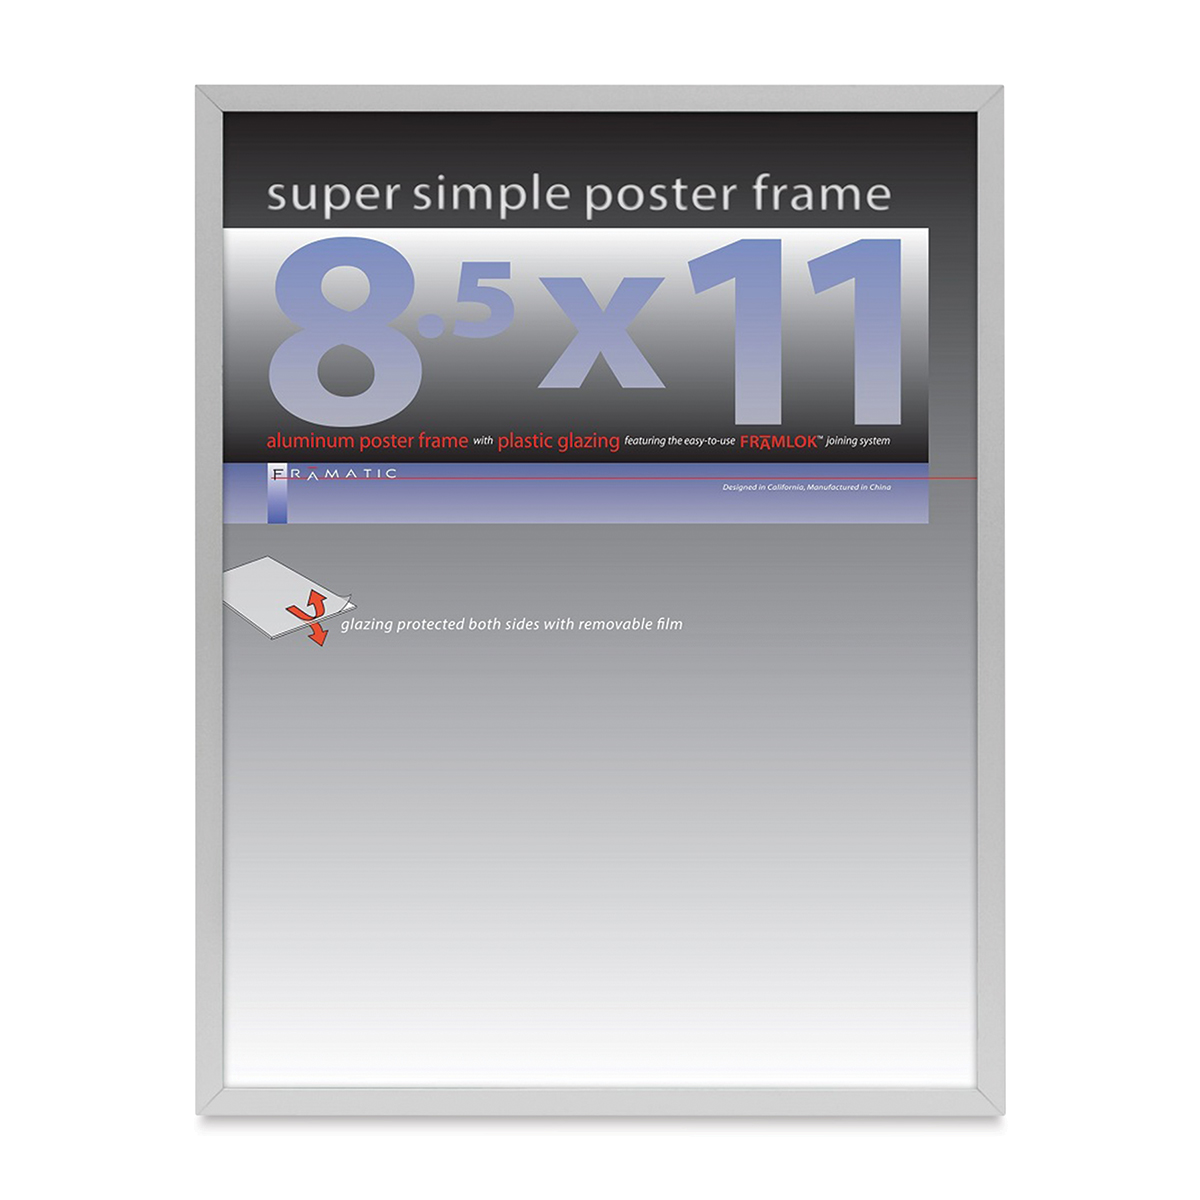 Framatic Super Simple Poster Frame - Silver, 8-1/2 x 11